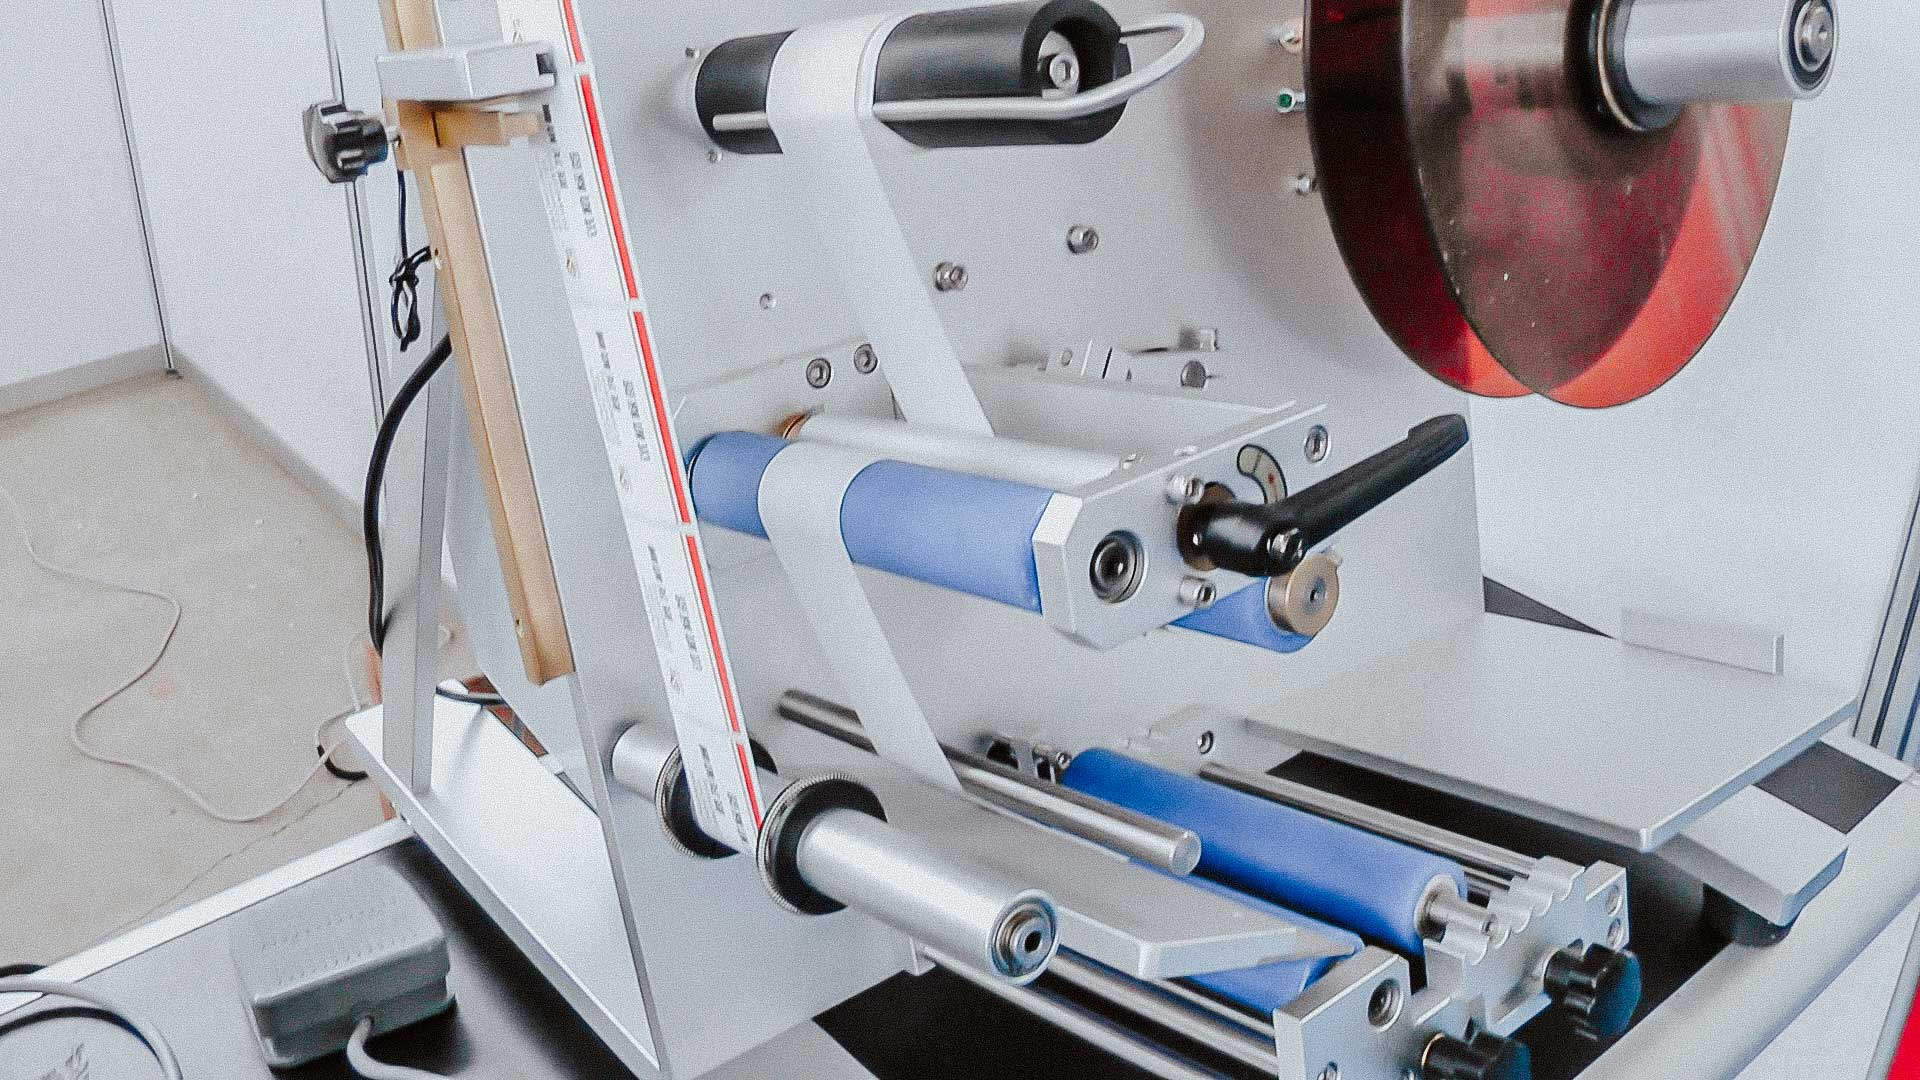 Desktop labeling machine for self-adhesive labels on plastic bottles with pharmacy products